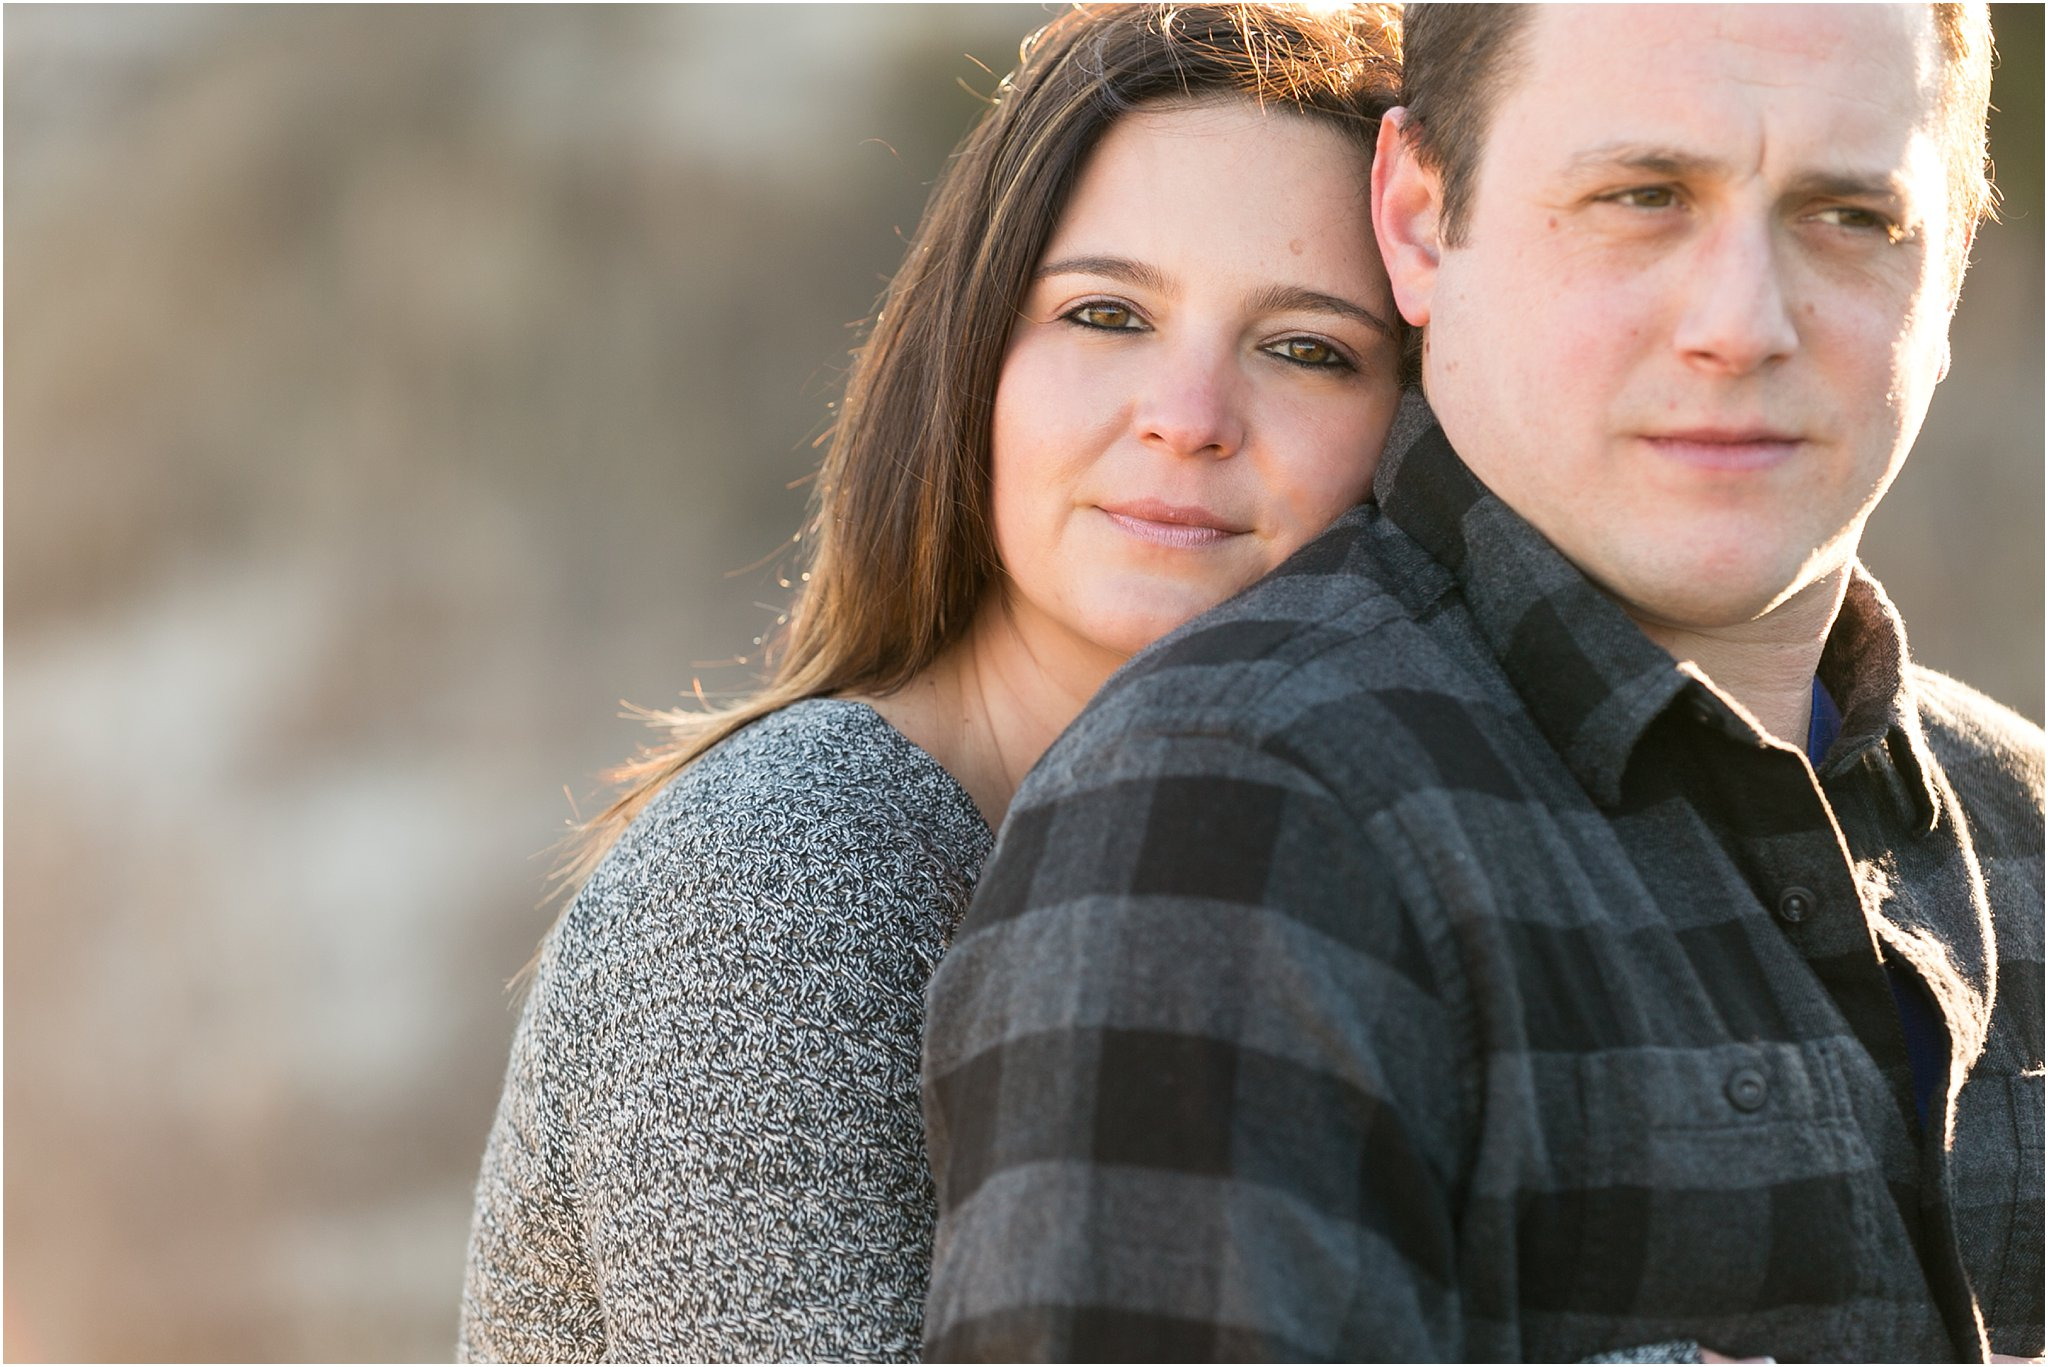 jessica_ryan_photography_winter_engagements_virginia_beach_oceanfront_virginia_0751